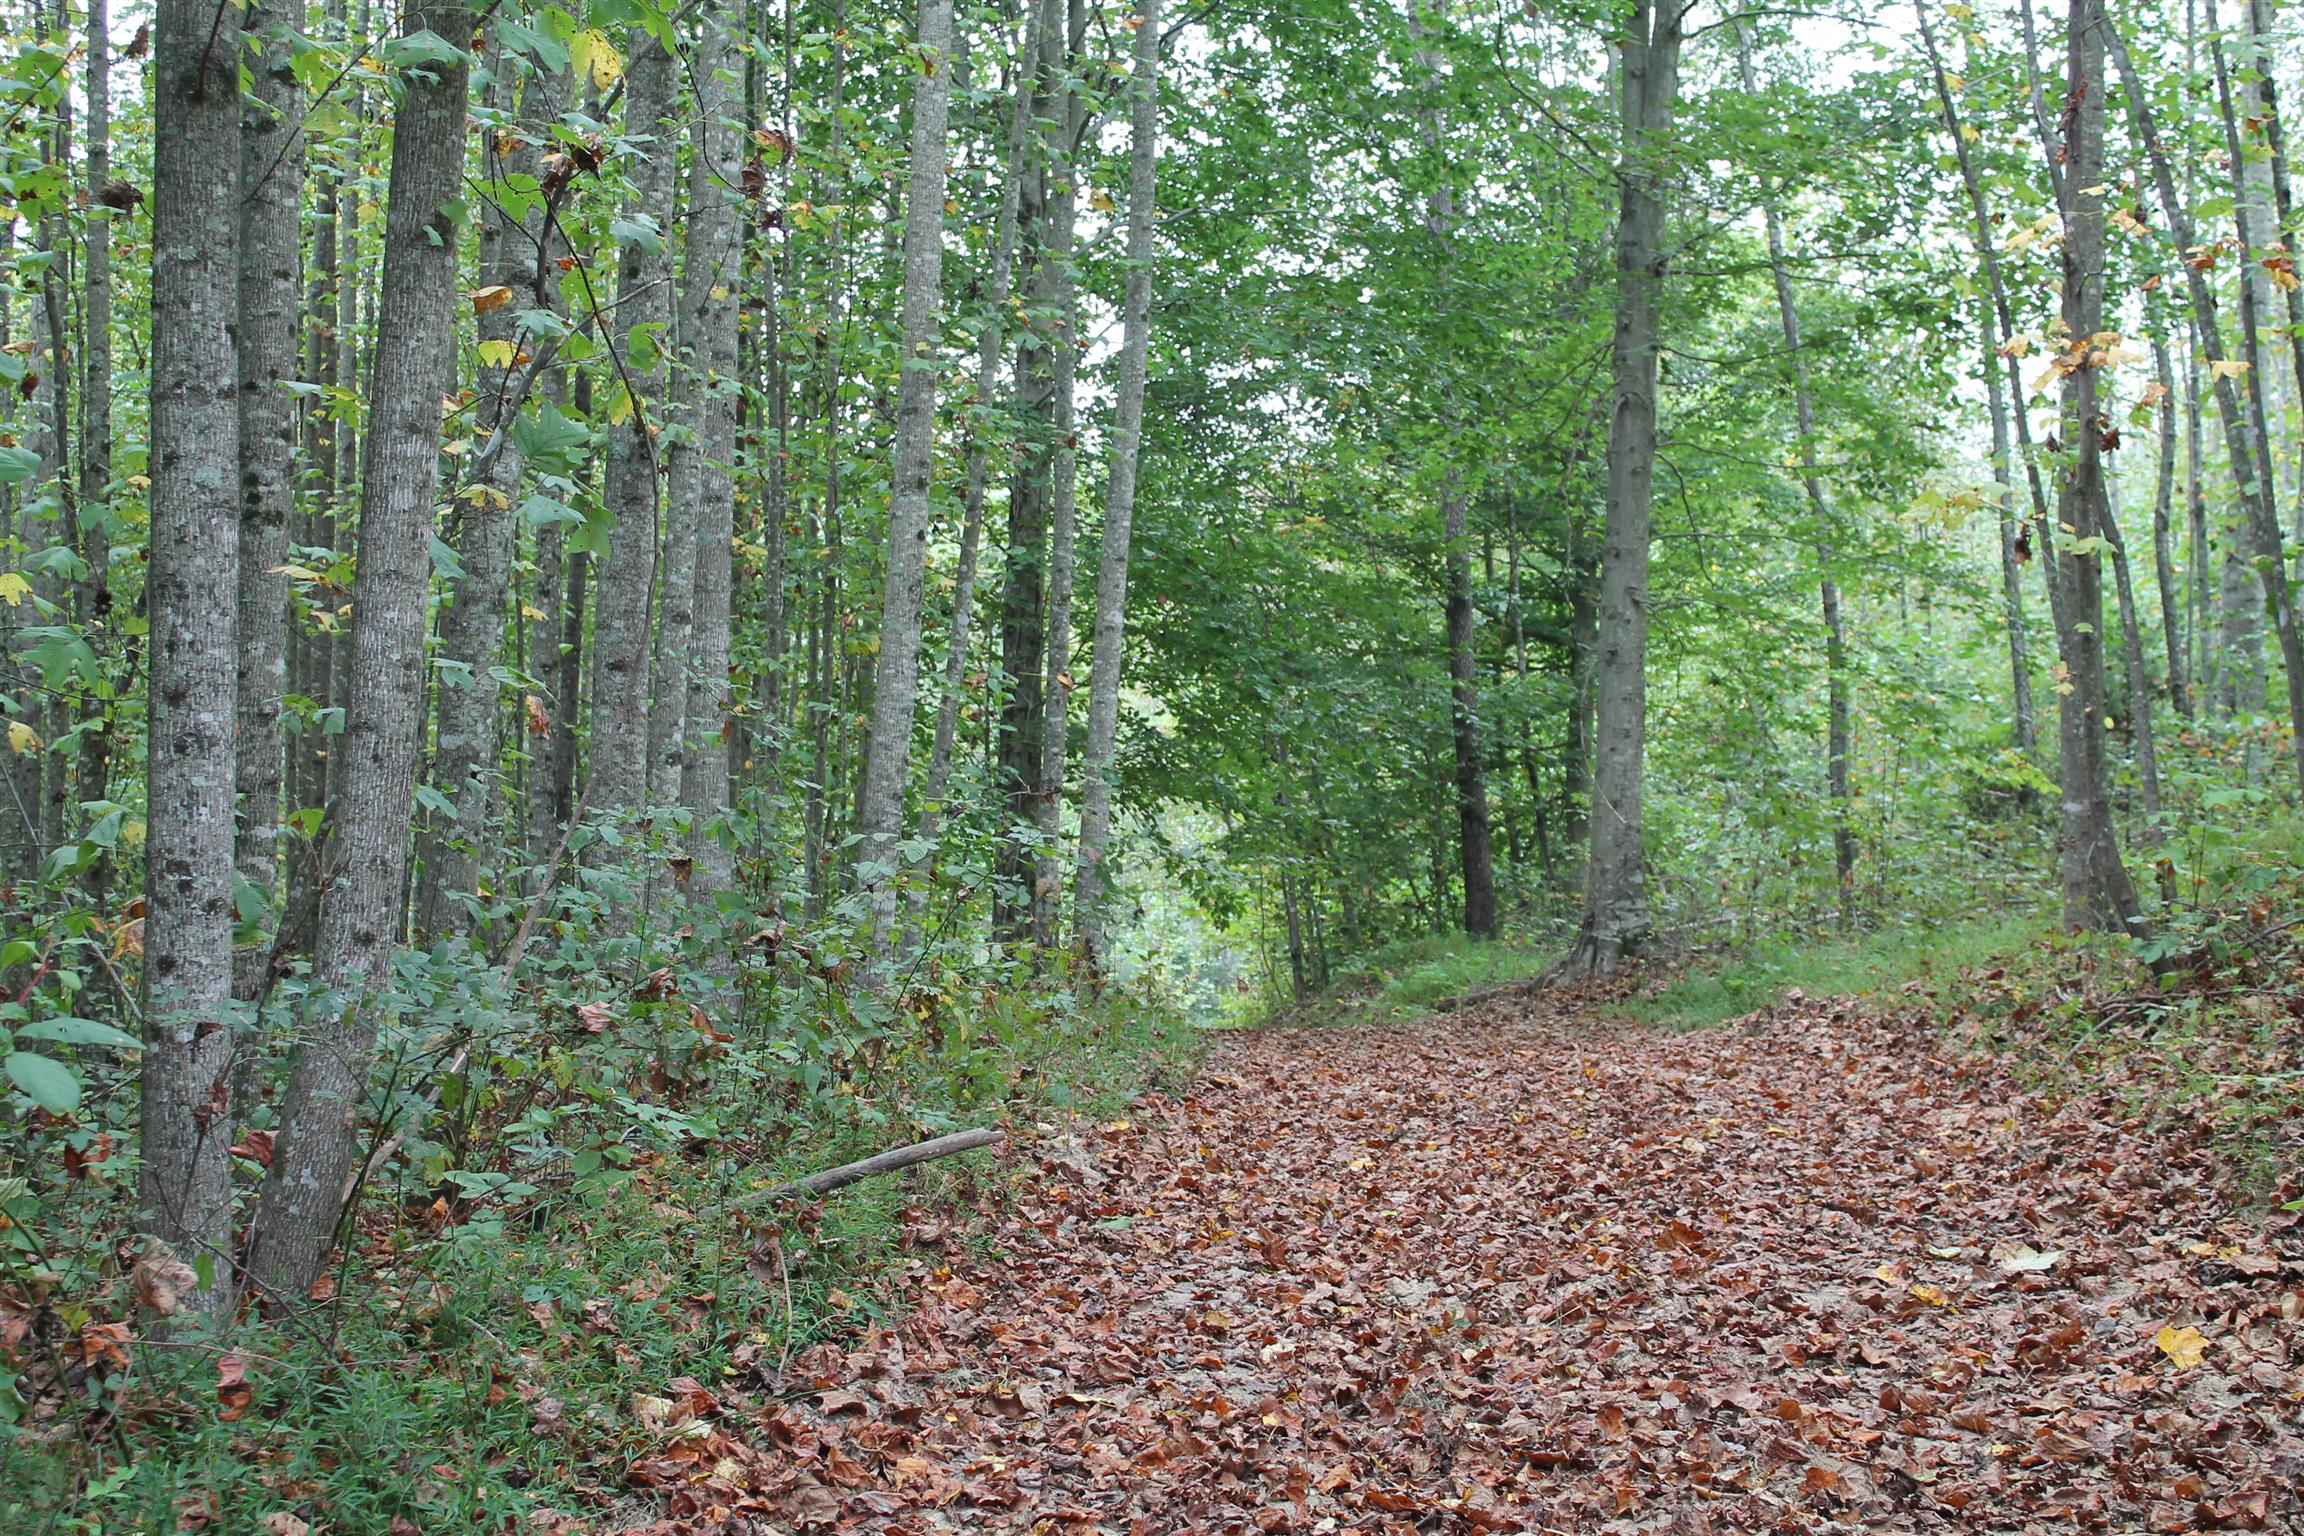 0 Cotton Hollow Road, Red Boiling Springs, TN 37150 - Red Boiling Springs, TN real estate listing